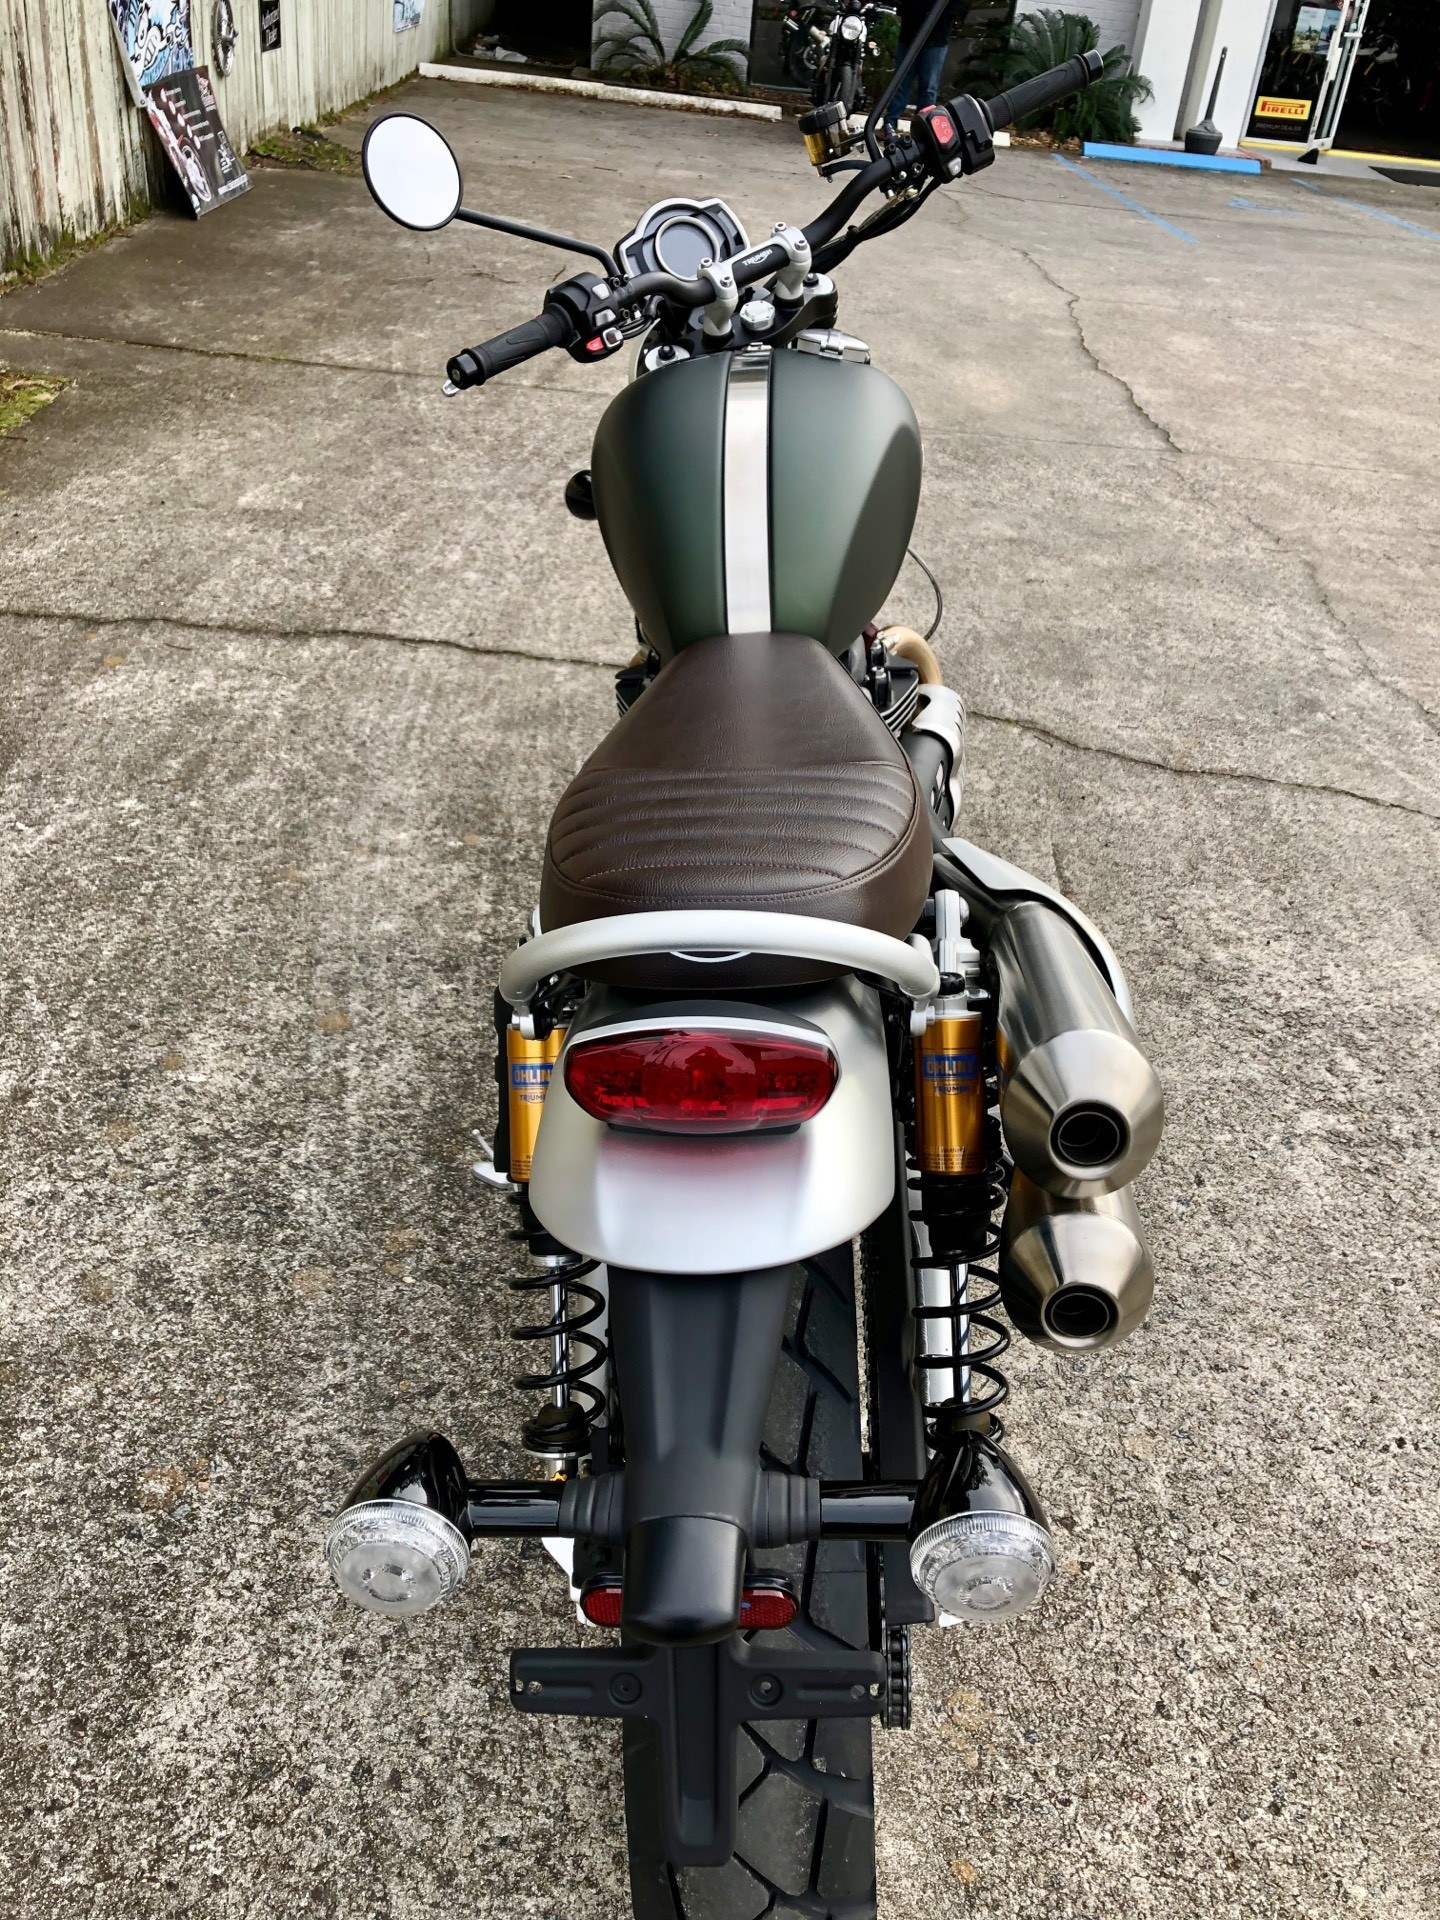 2020 Triumph Scrambler 1200 XC in Charleston, South Carolina - Photo 7